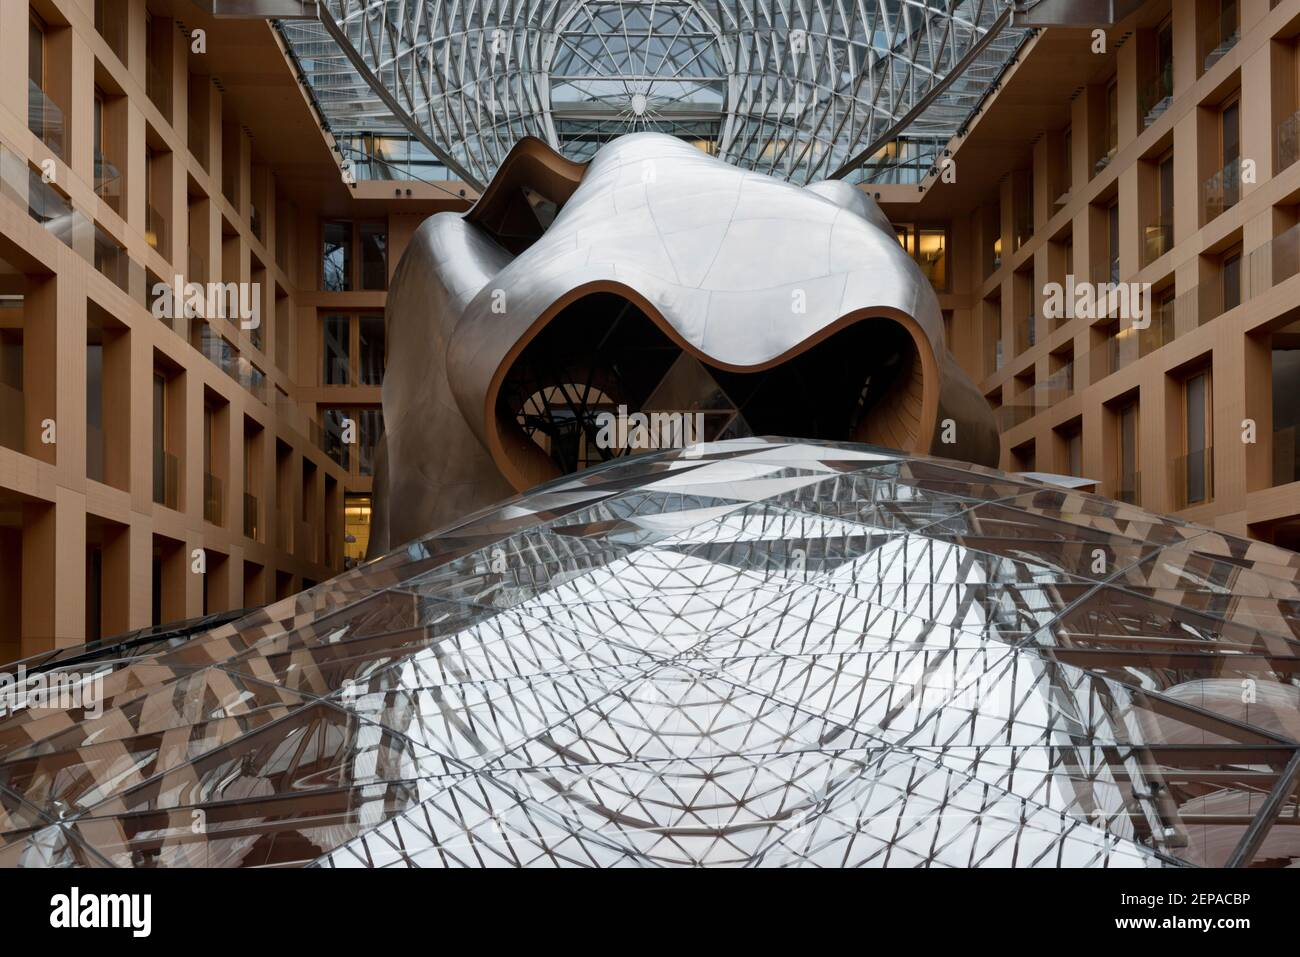 The glass and mesh atrium, designed by Frank Gehry, inside the DZ Bank building in Berlin, Germany. Stock Photo